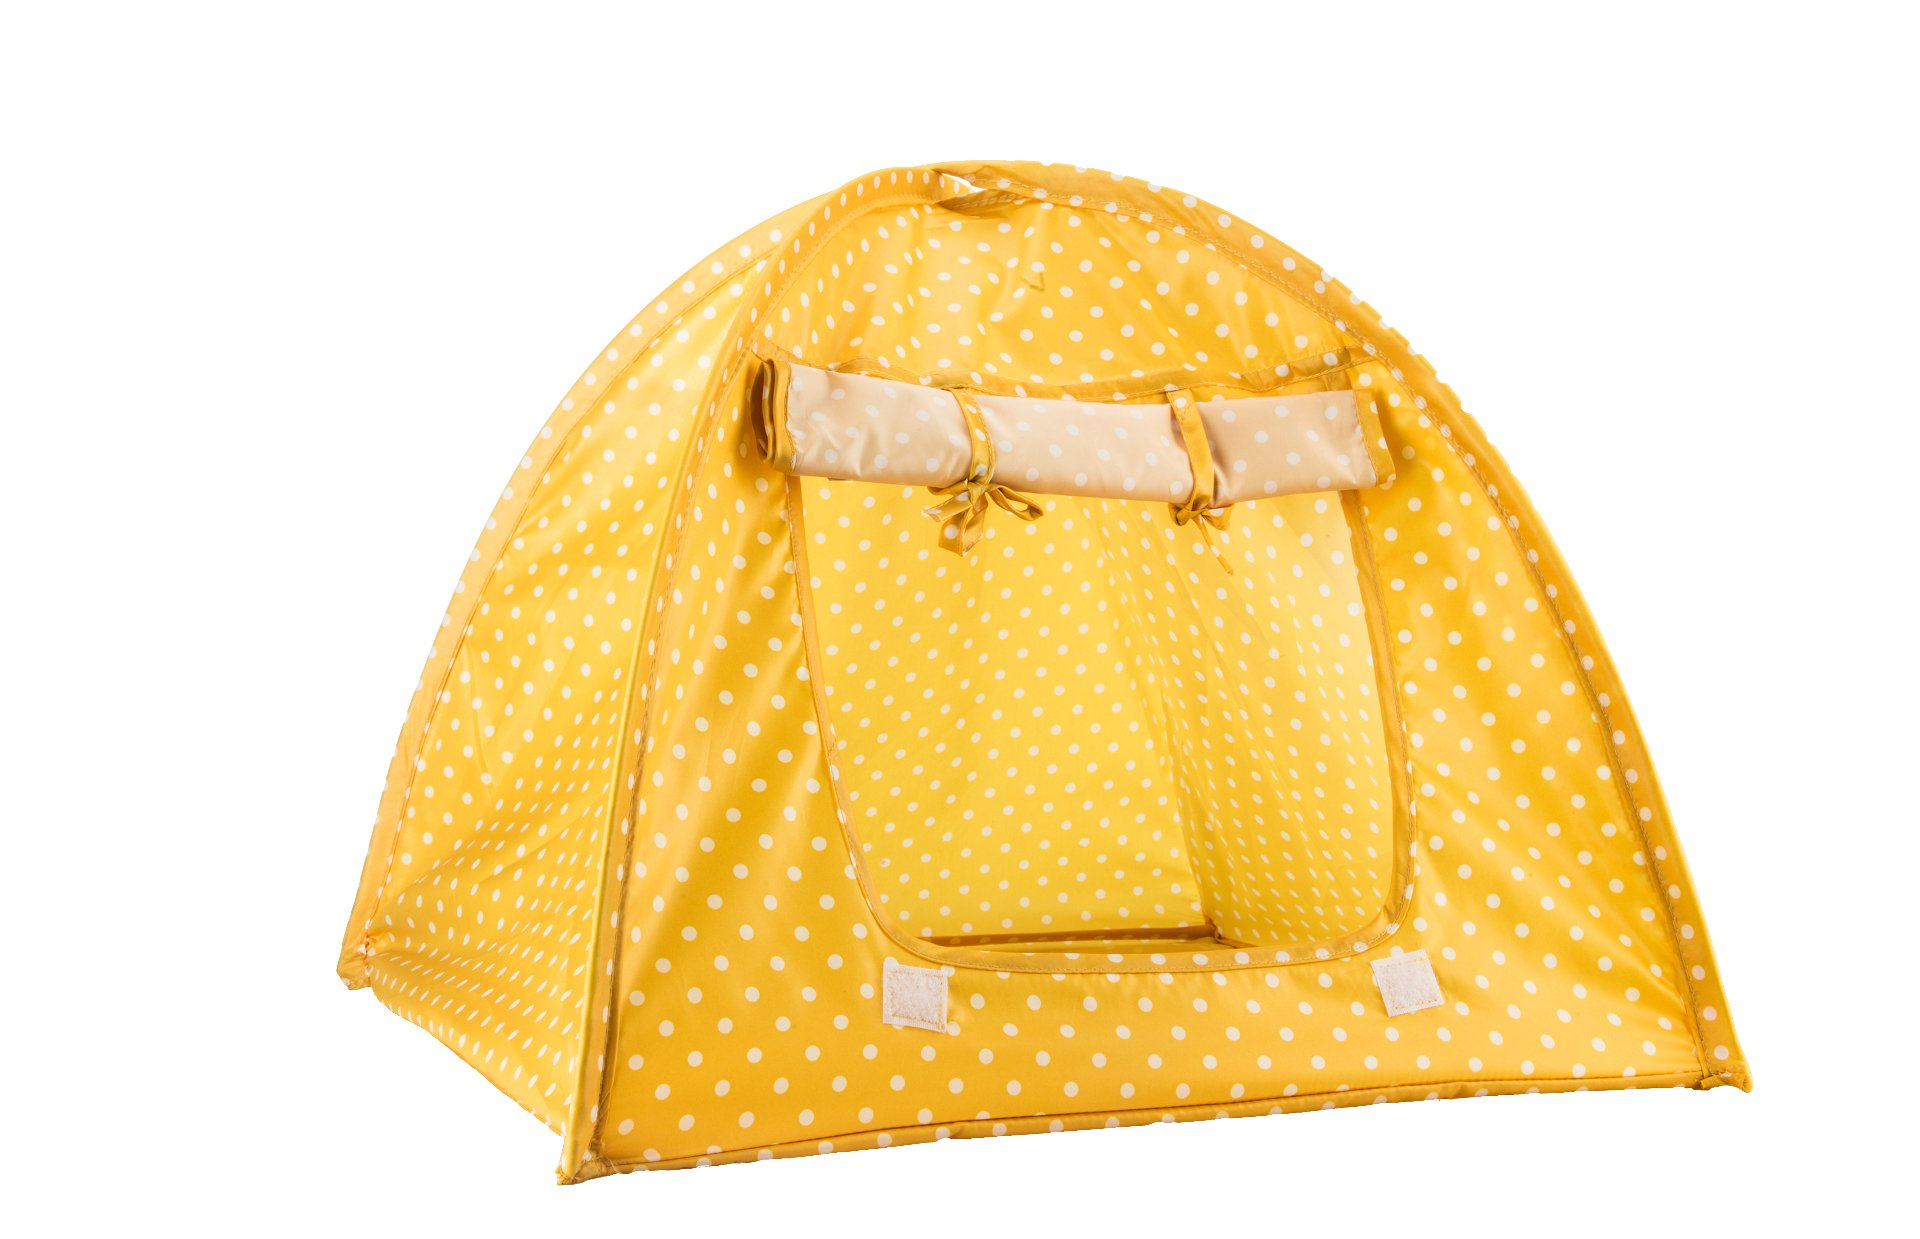 Viiler Pet Supplies Washable Durable Cute Dots Style Pet House Tent for Small Size Dogs and Cats Green/Pink/Yellow Colors /16.9''16.9''16.1'' (Yellow)